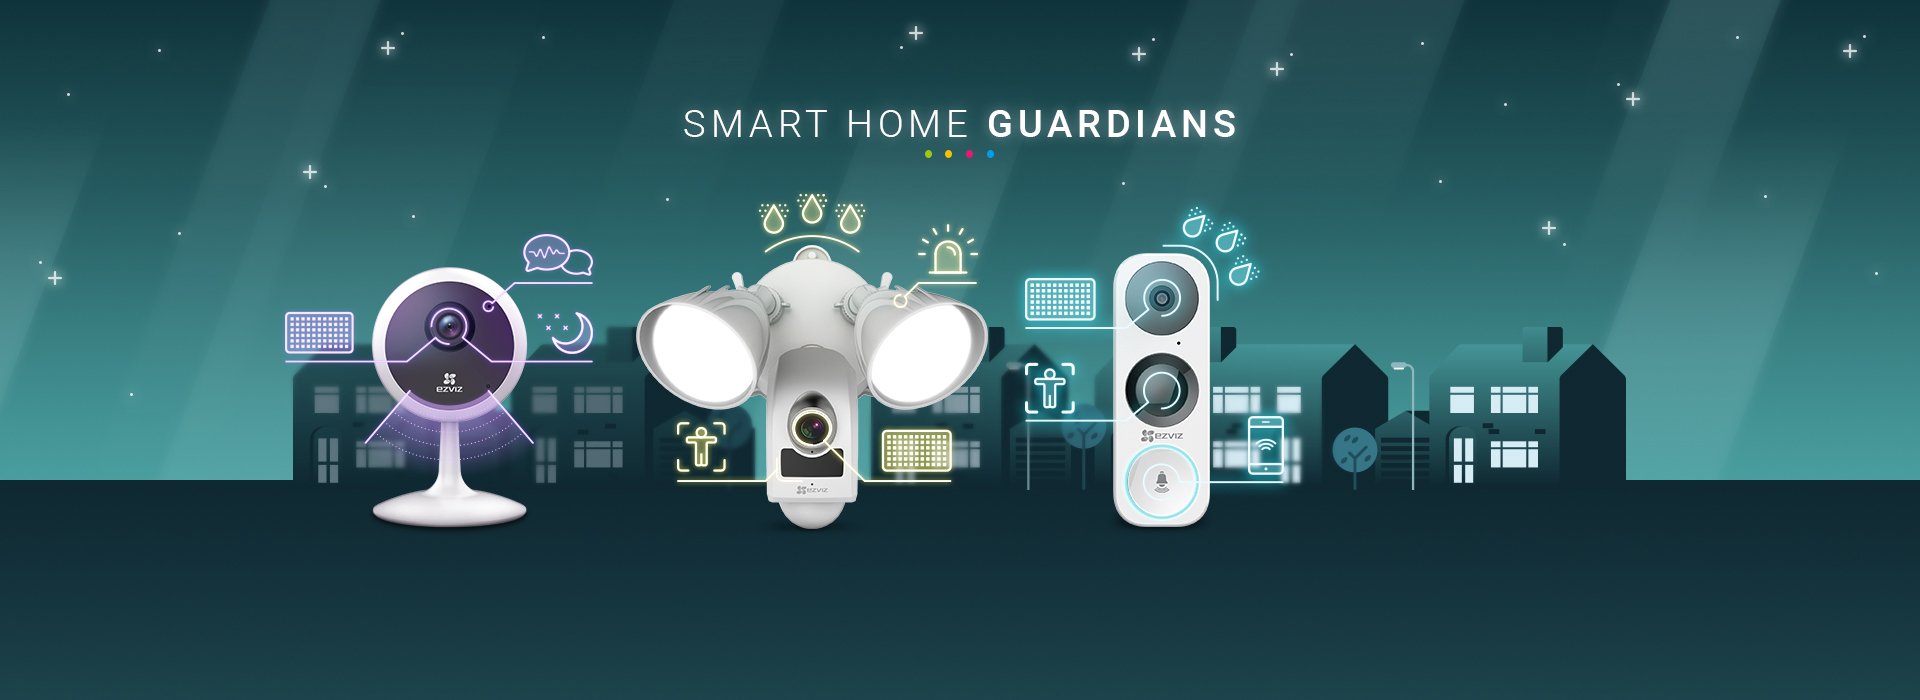 Smart Home Guardians